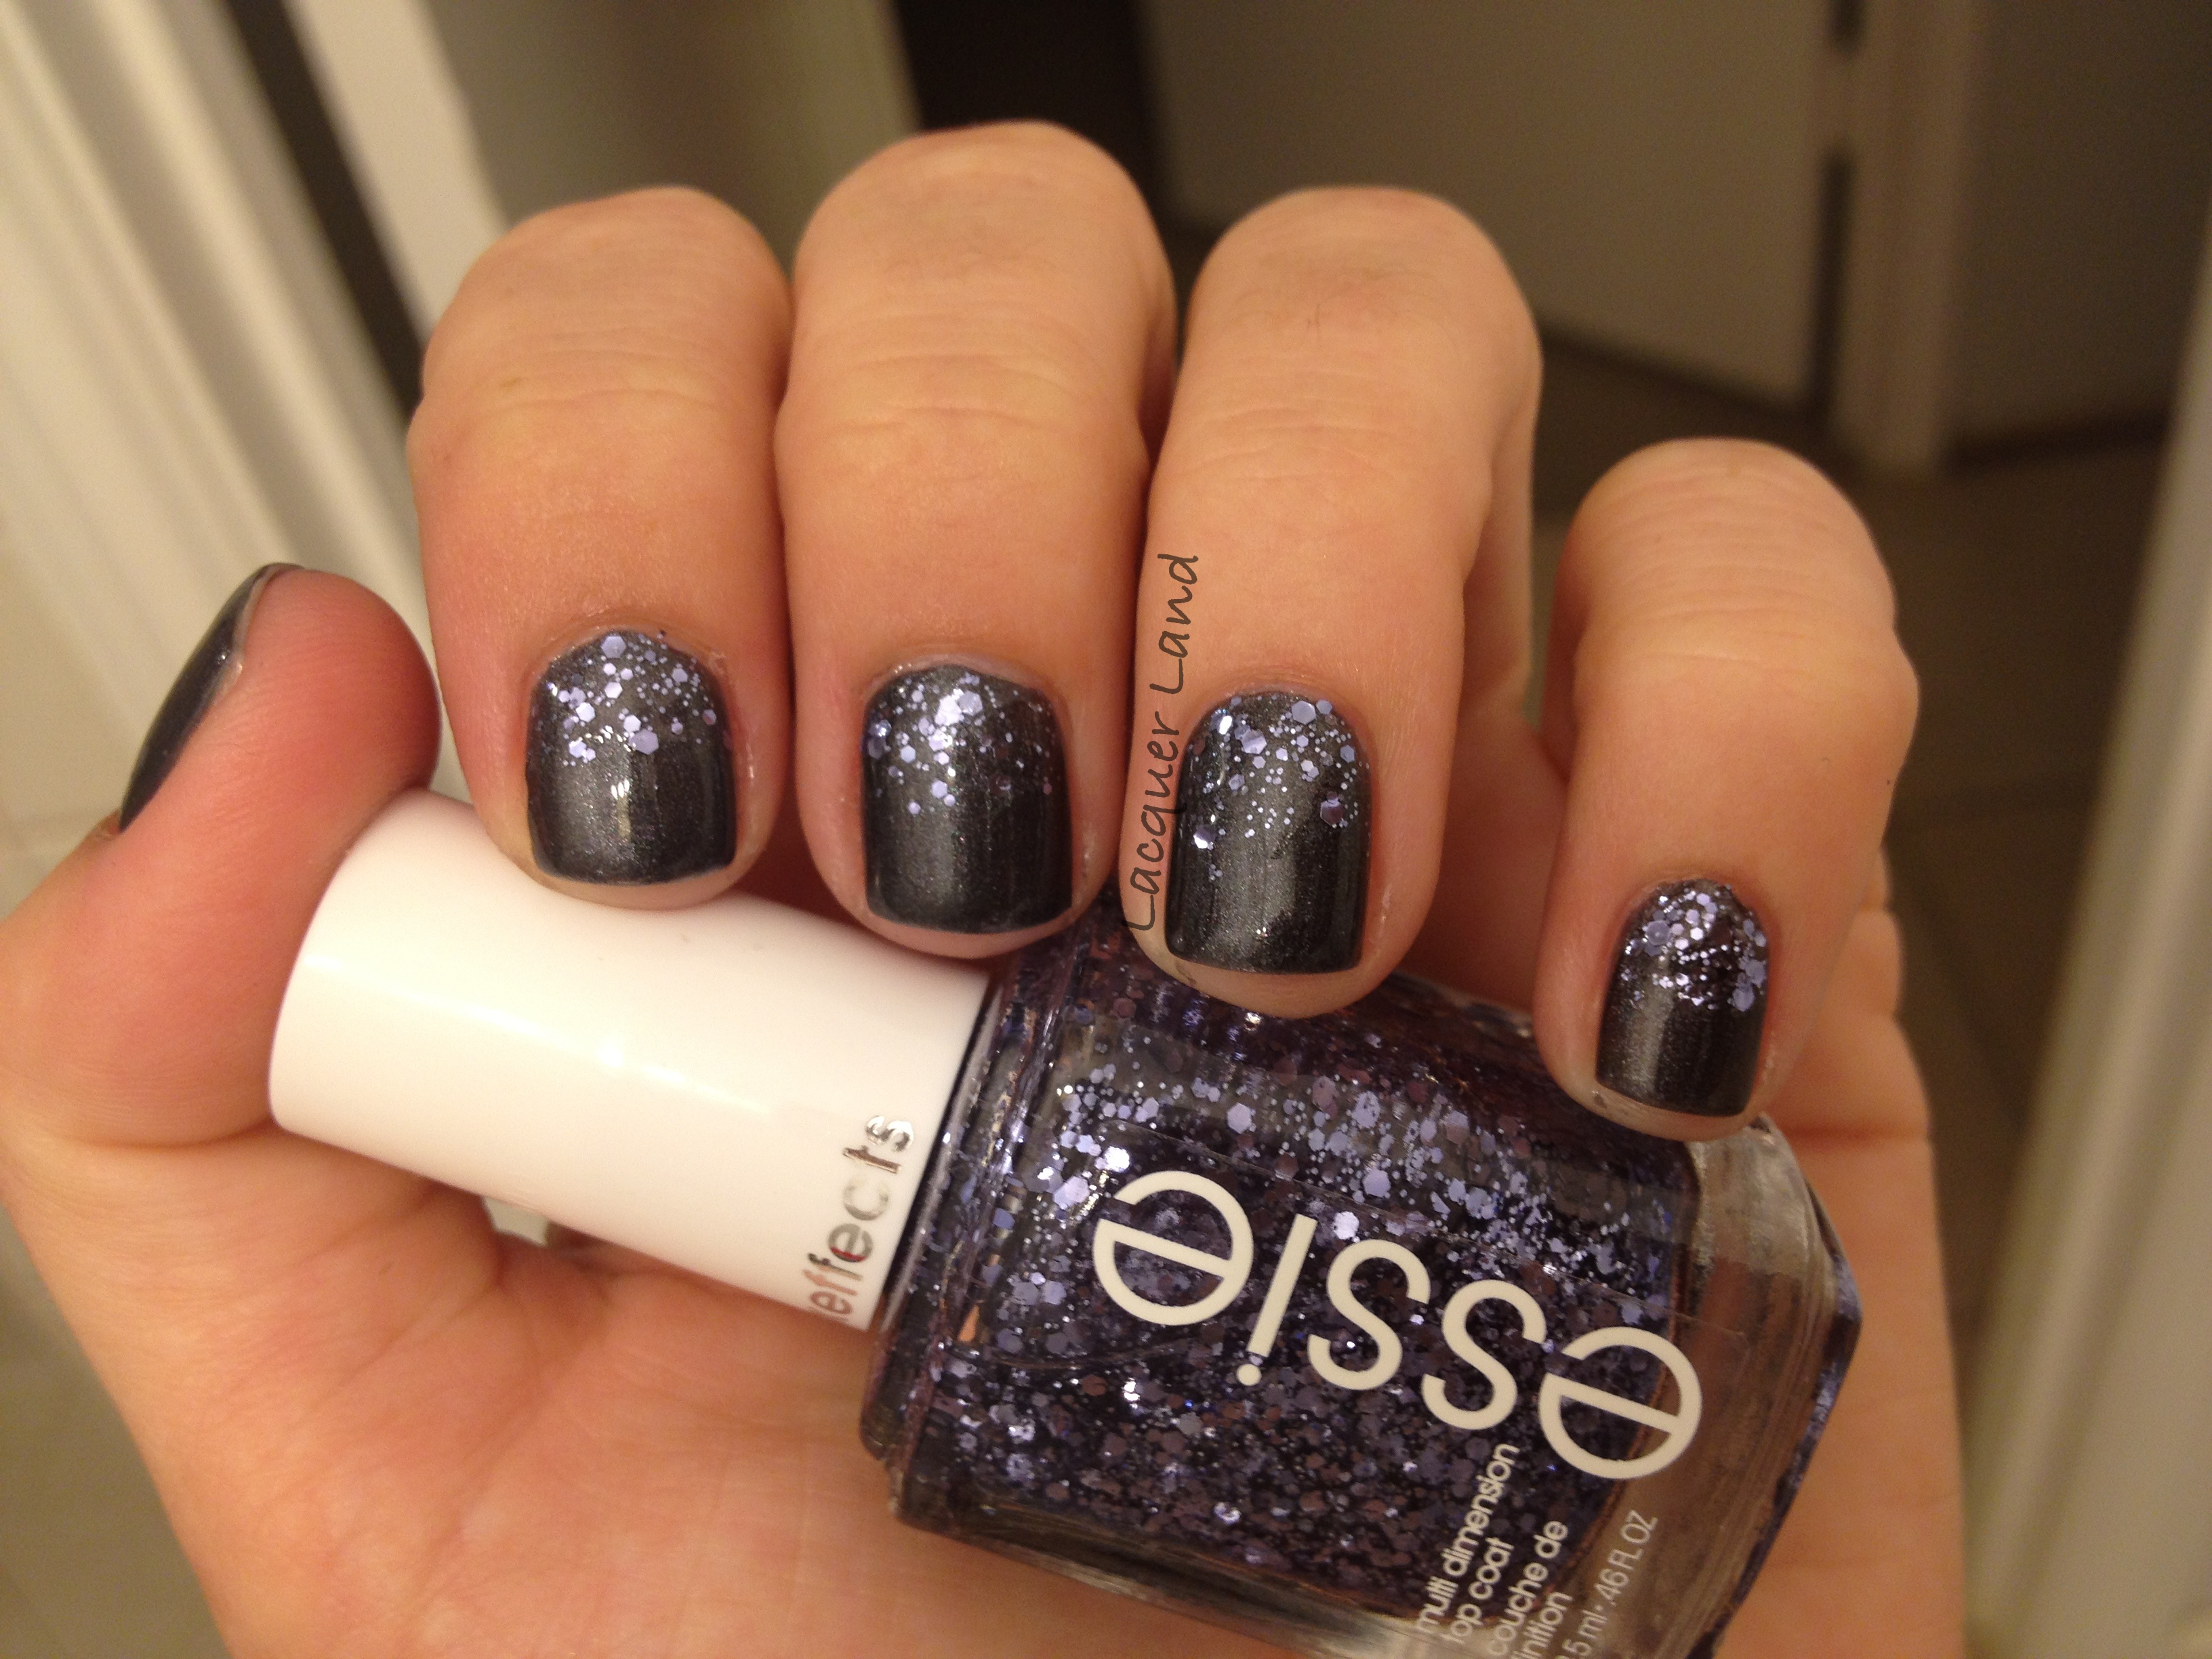 Essie Over the Edge | Lacquer Land